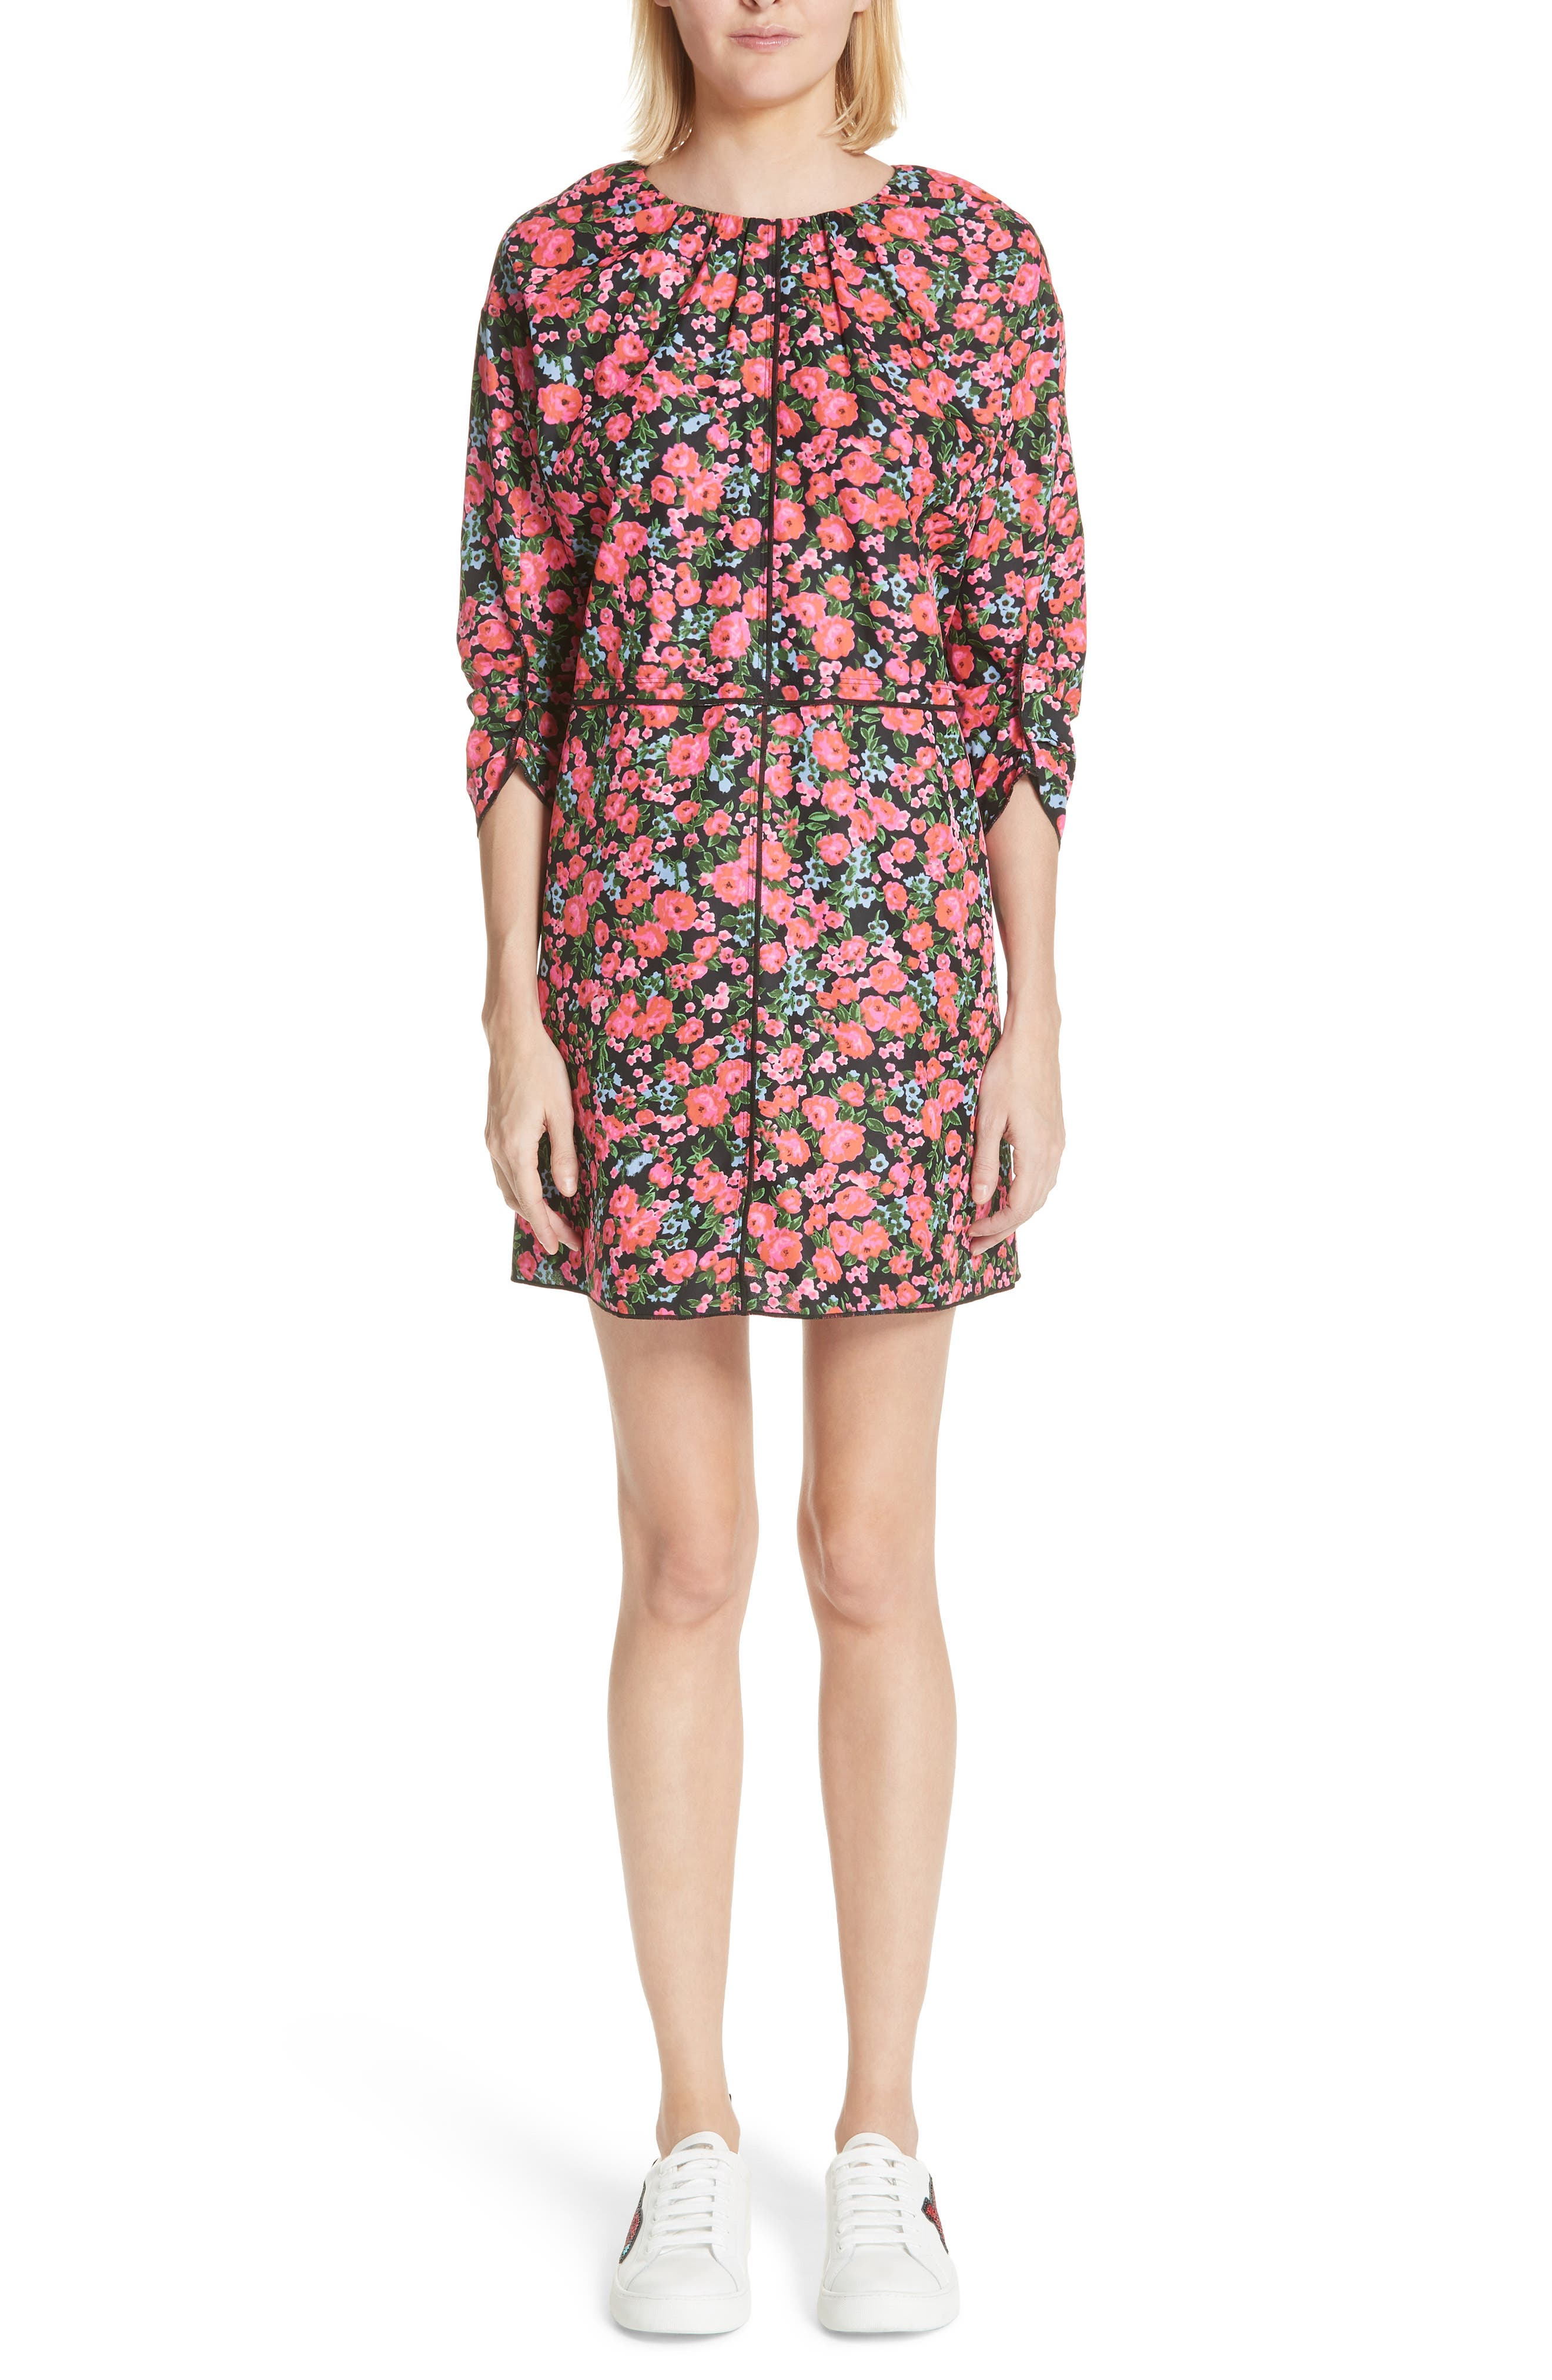 Marc Jacobs Floral Print Dress, Black